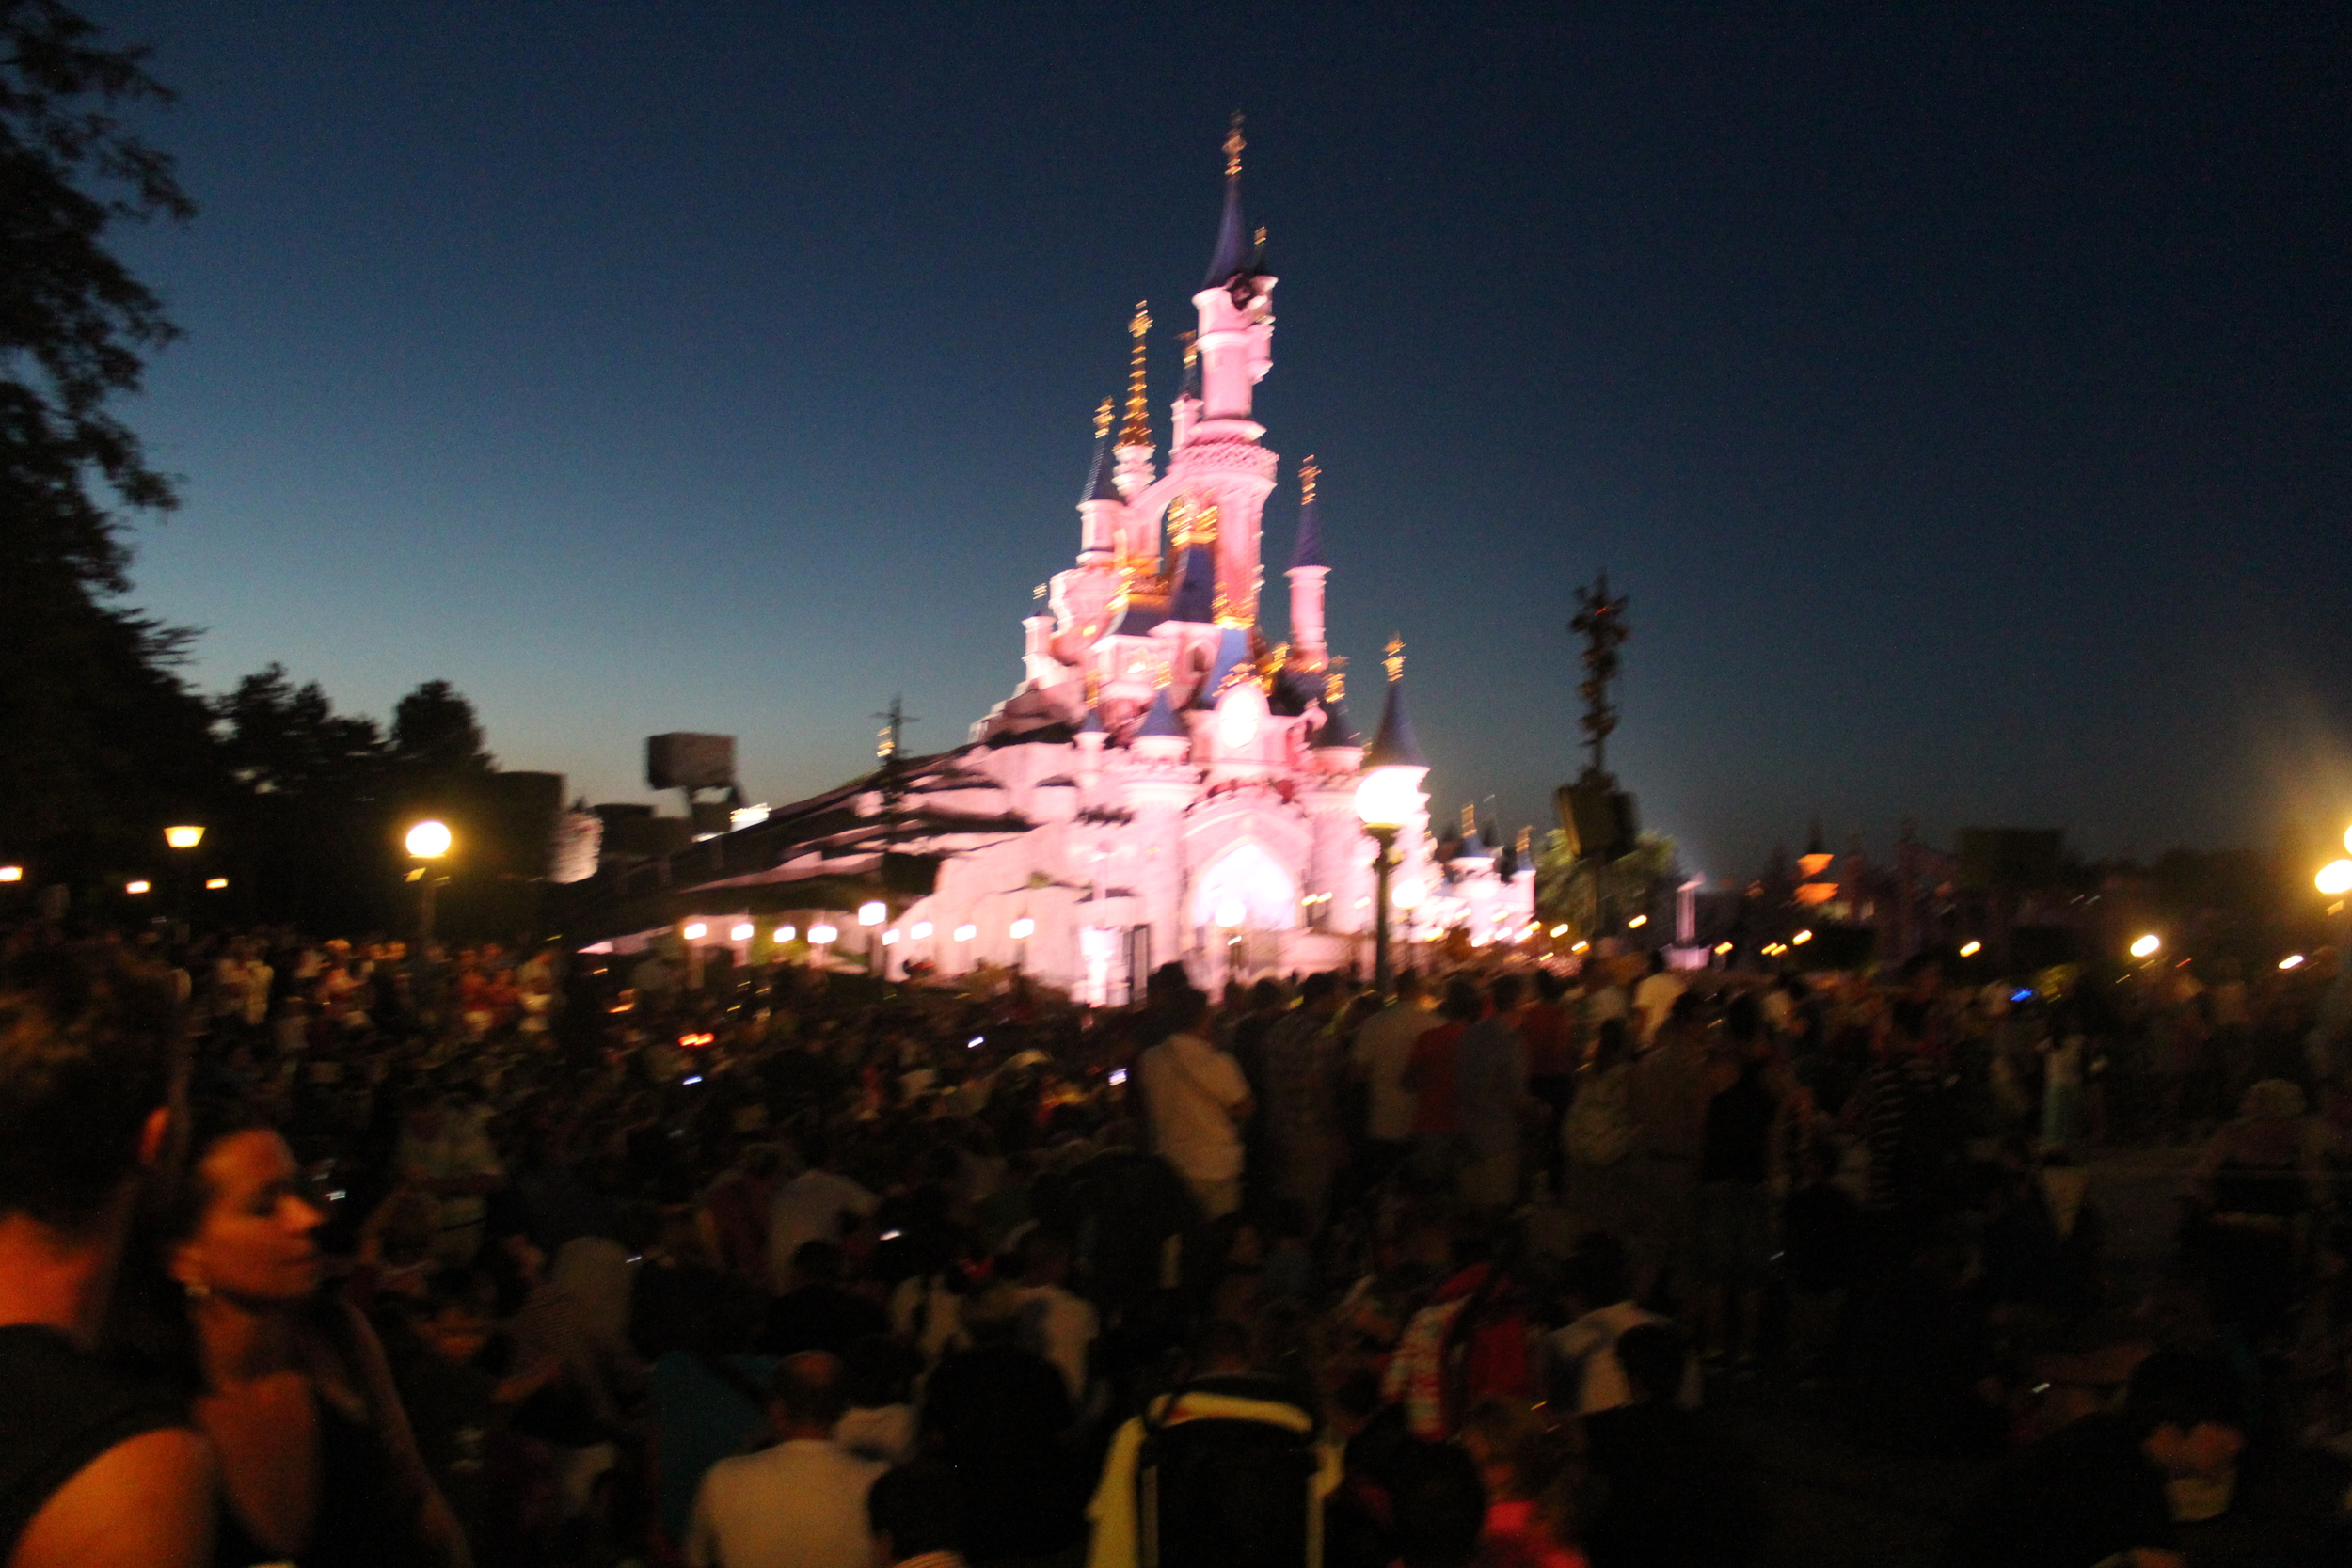 Crowds at Disney Paris